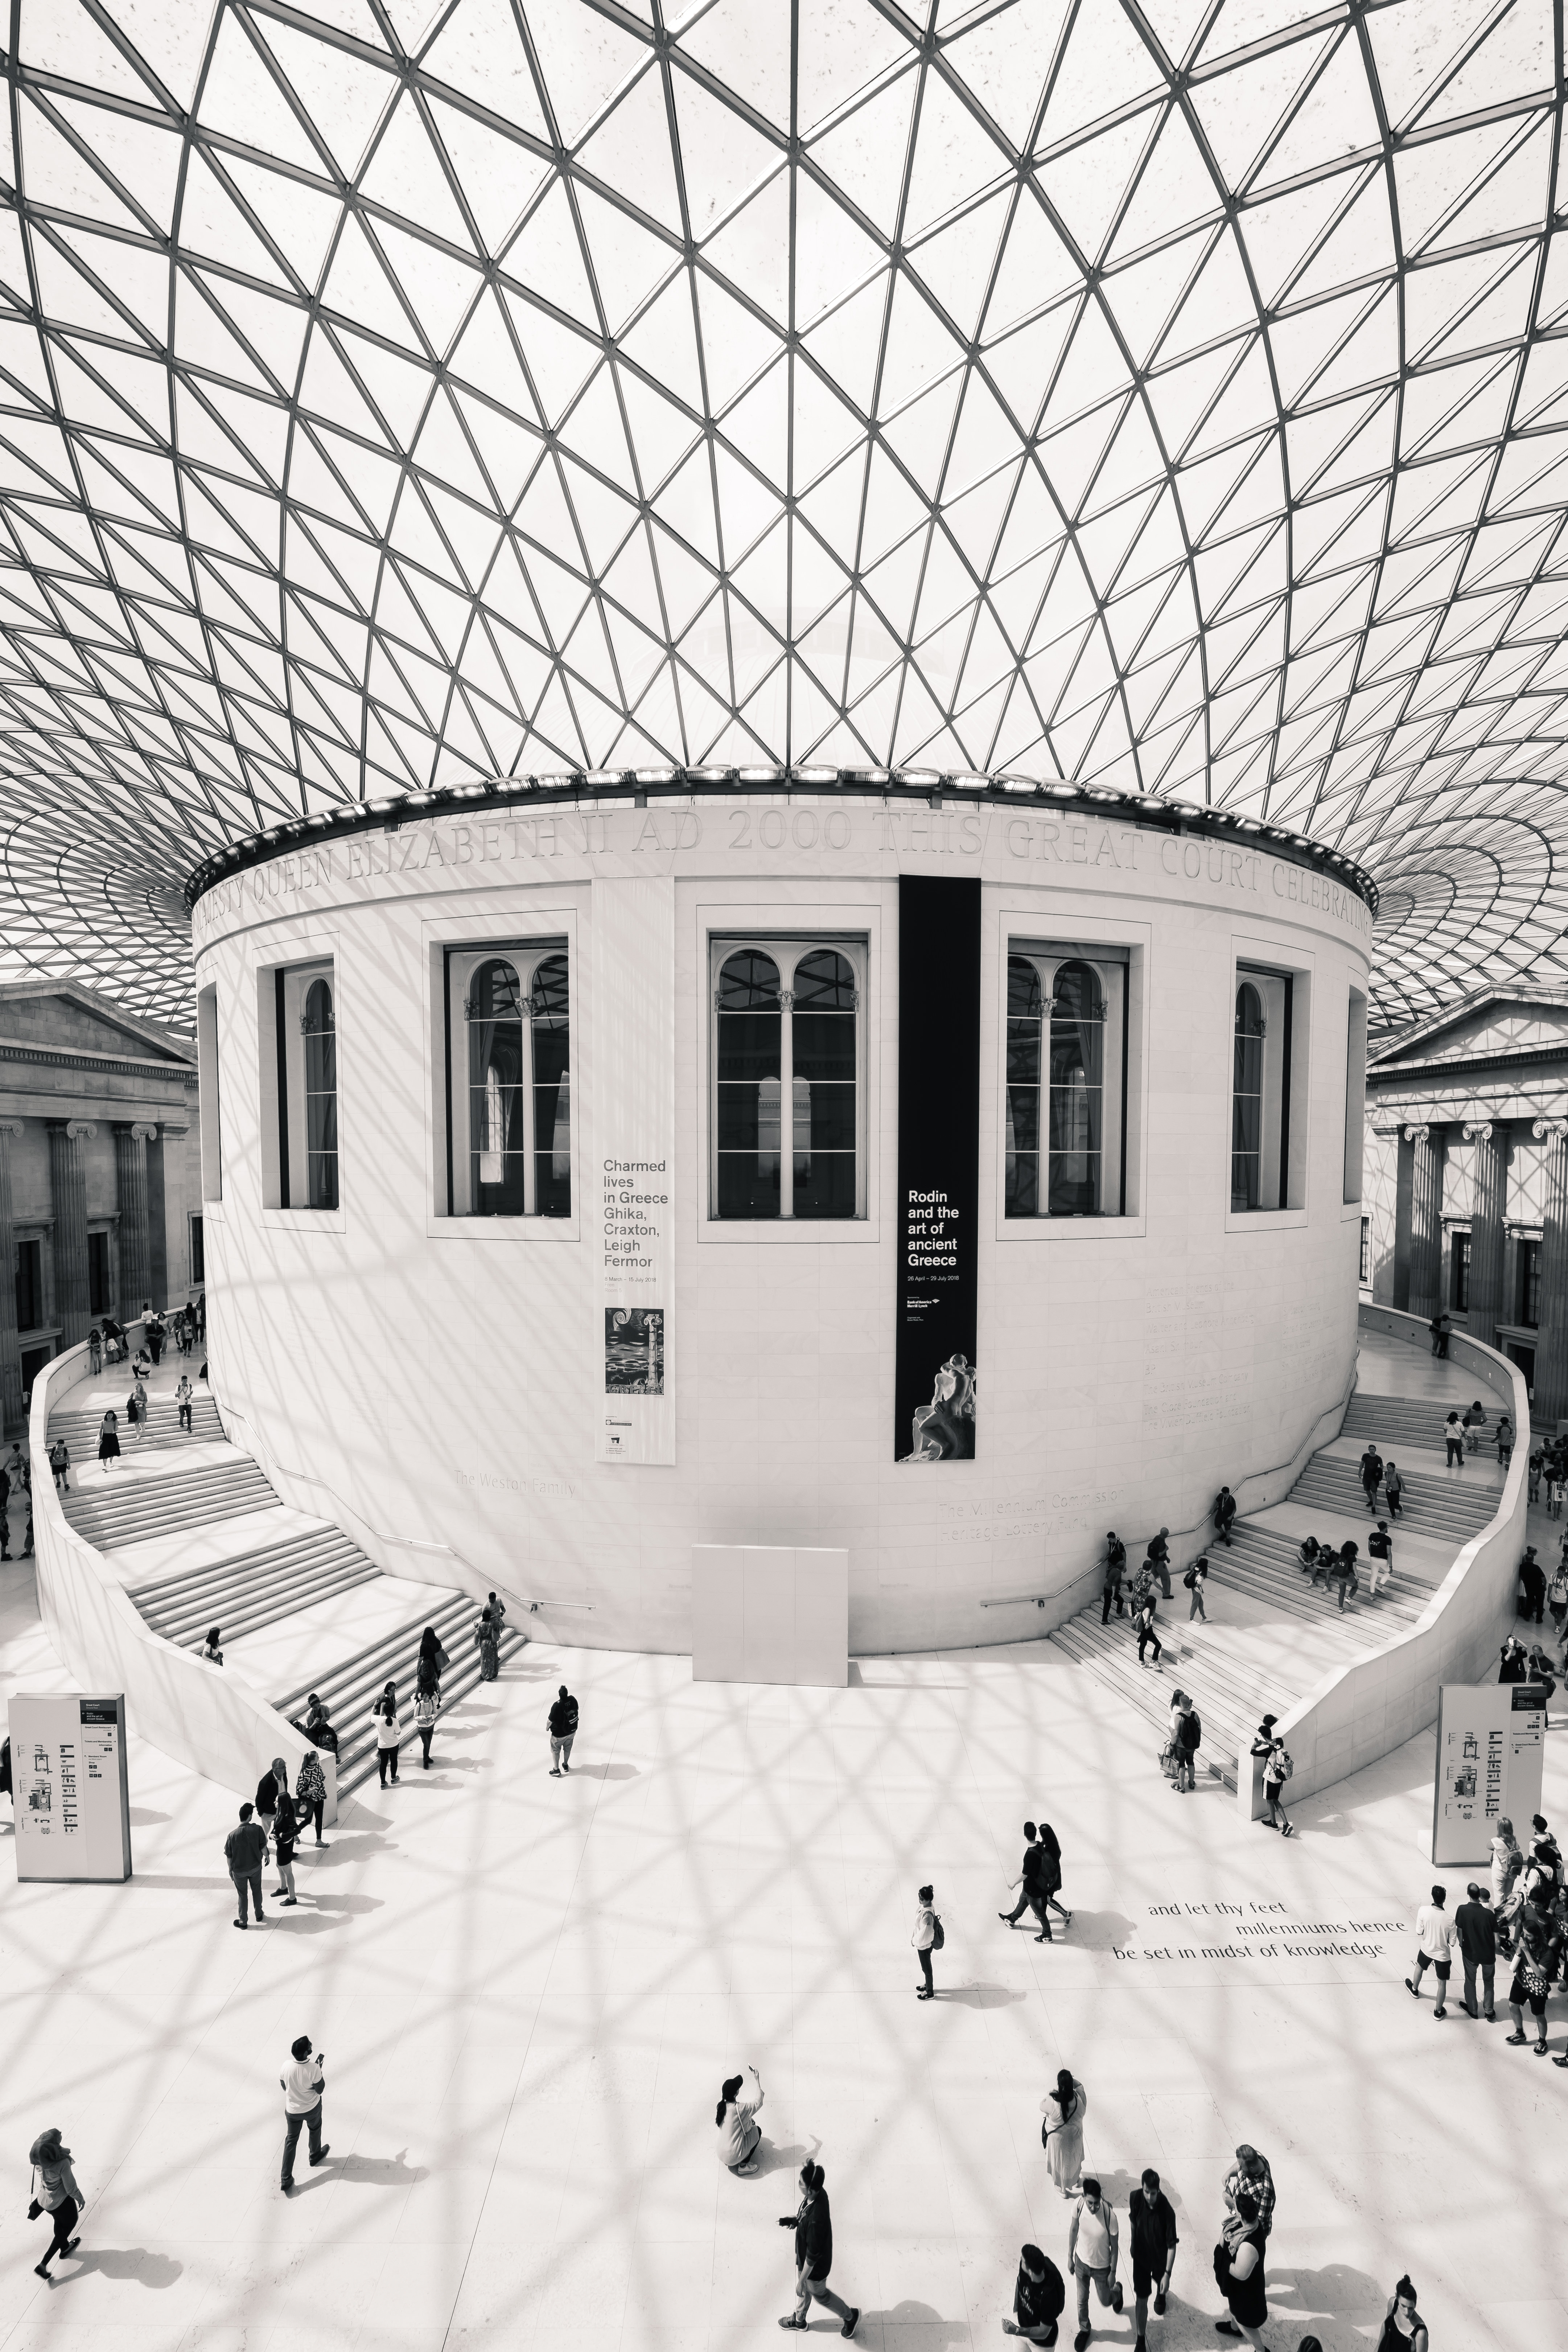 The British Museum, London, Photo by Grant Ritchie on Unsplash